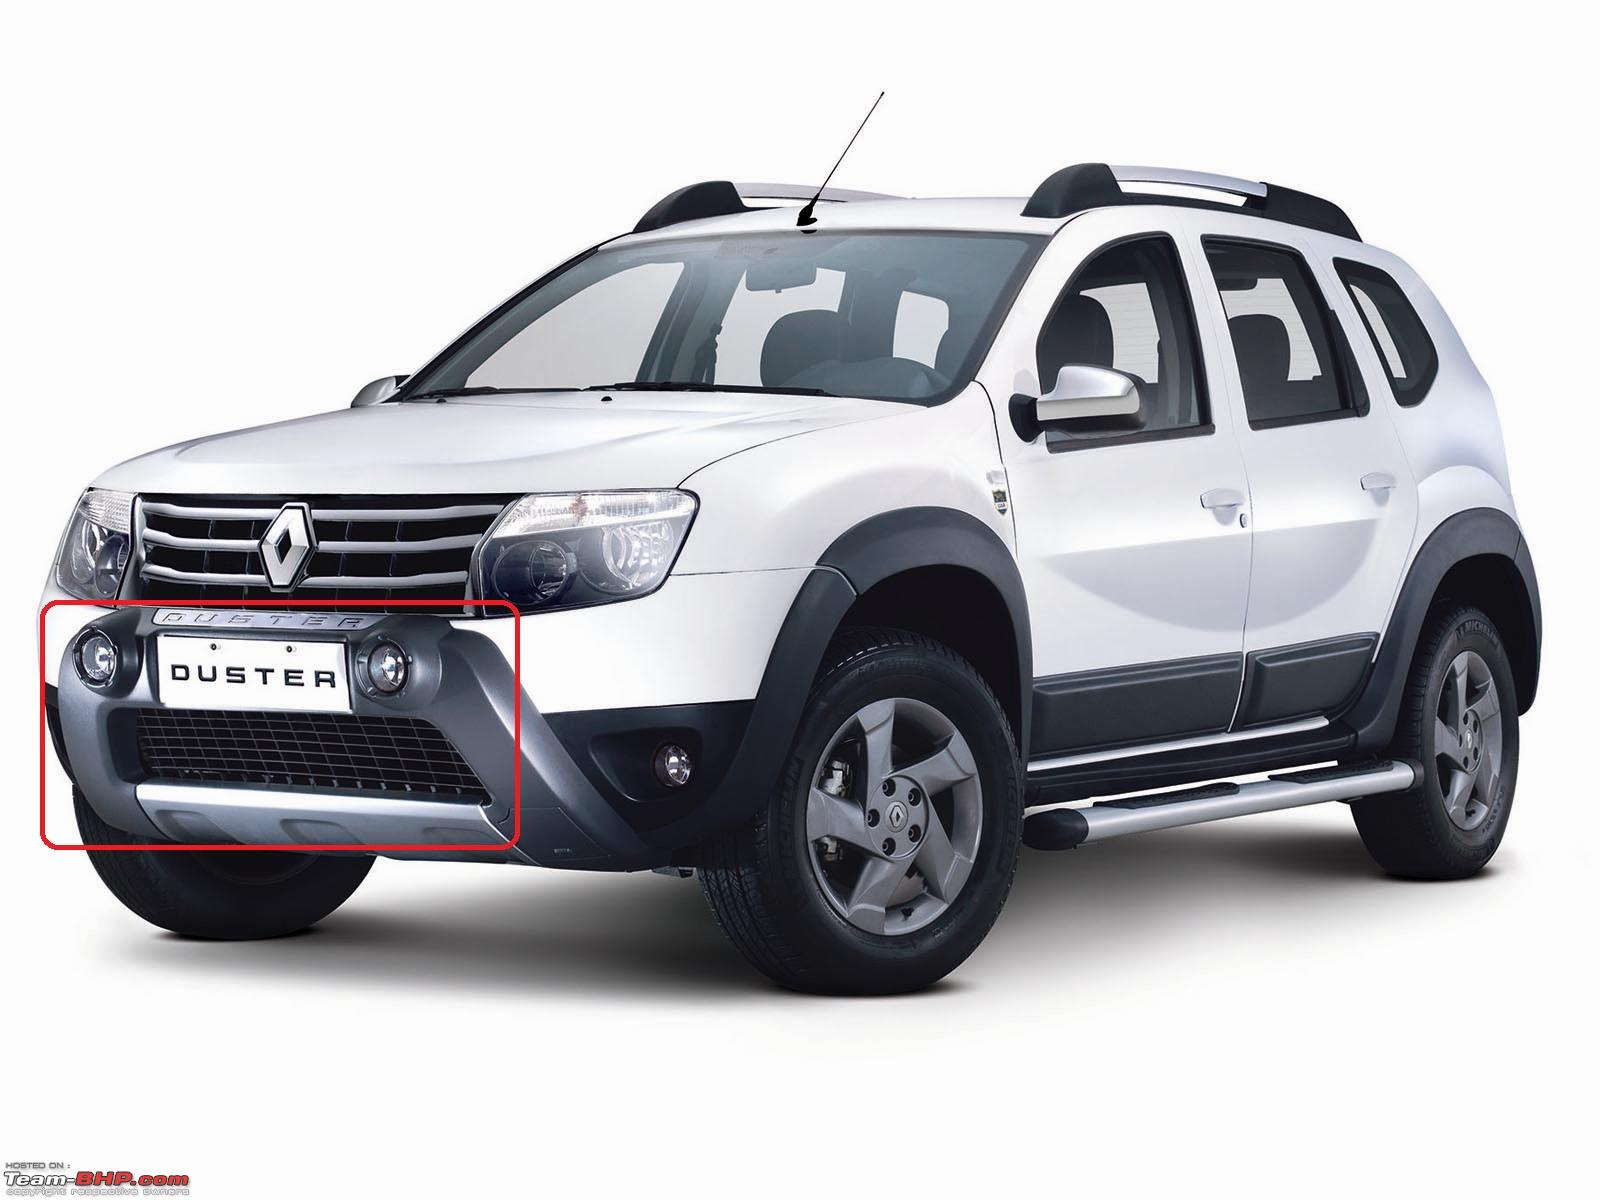 renault duster official review page 260 team bhp. Black Bedroom Furniture Sets. Home Design Ideas